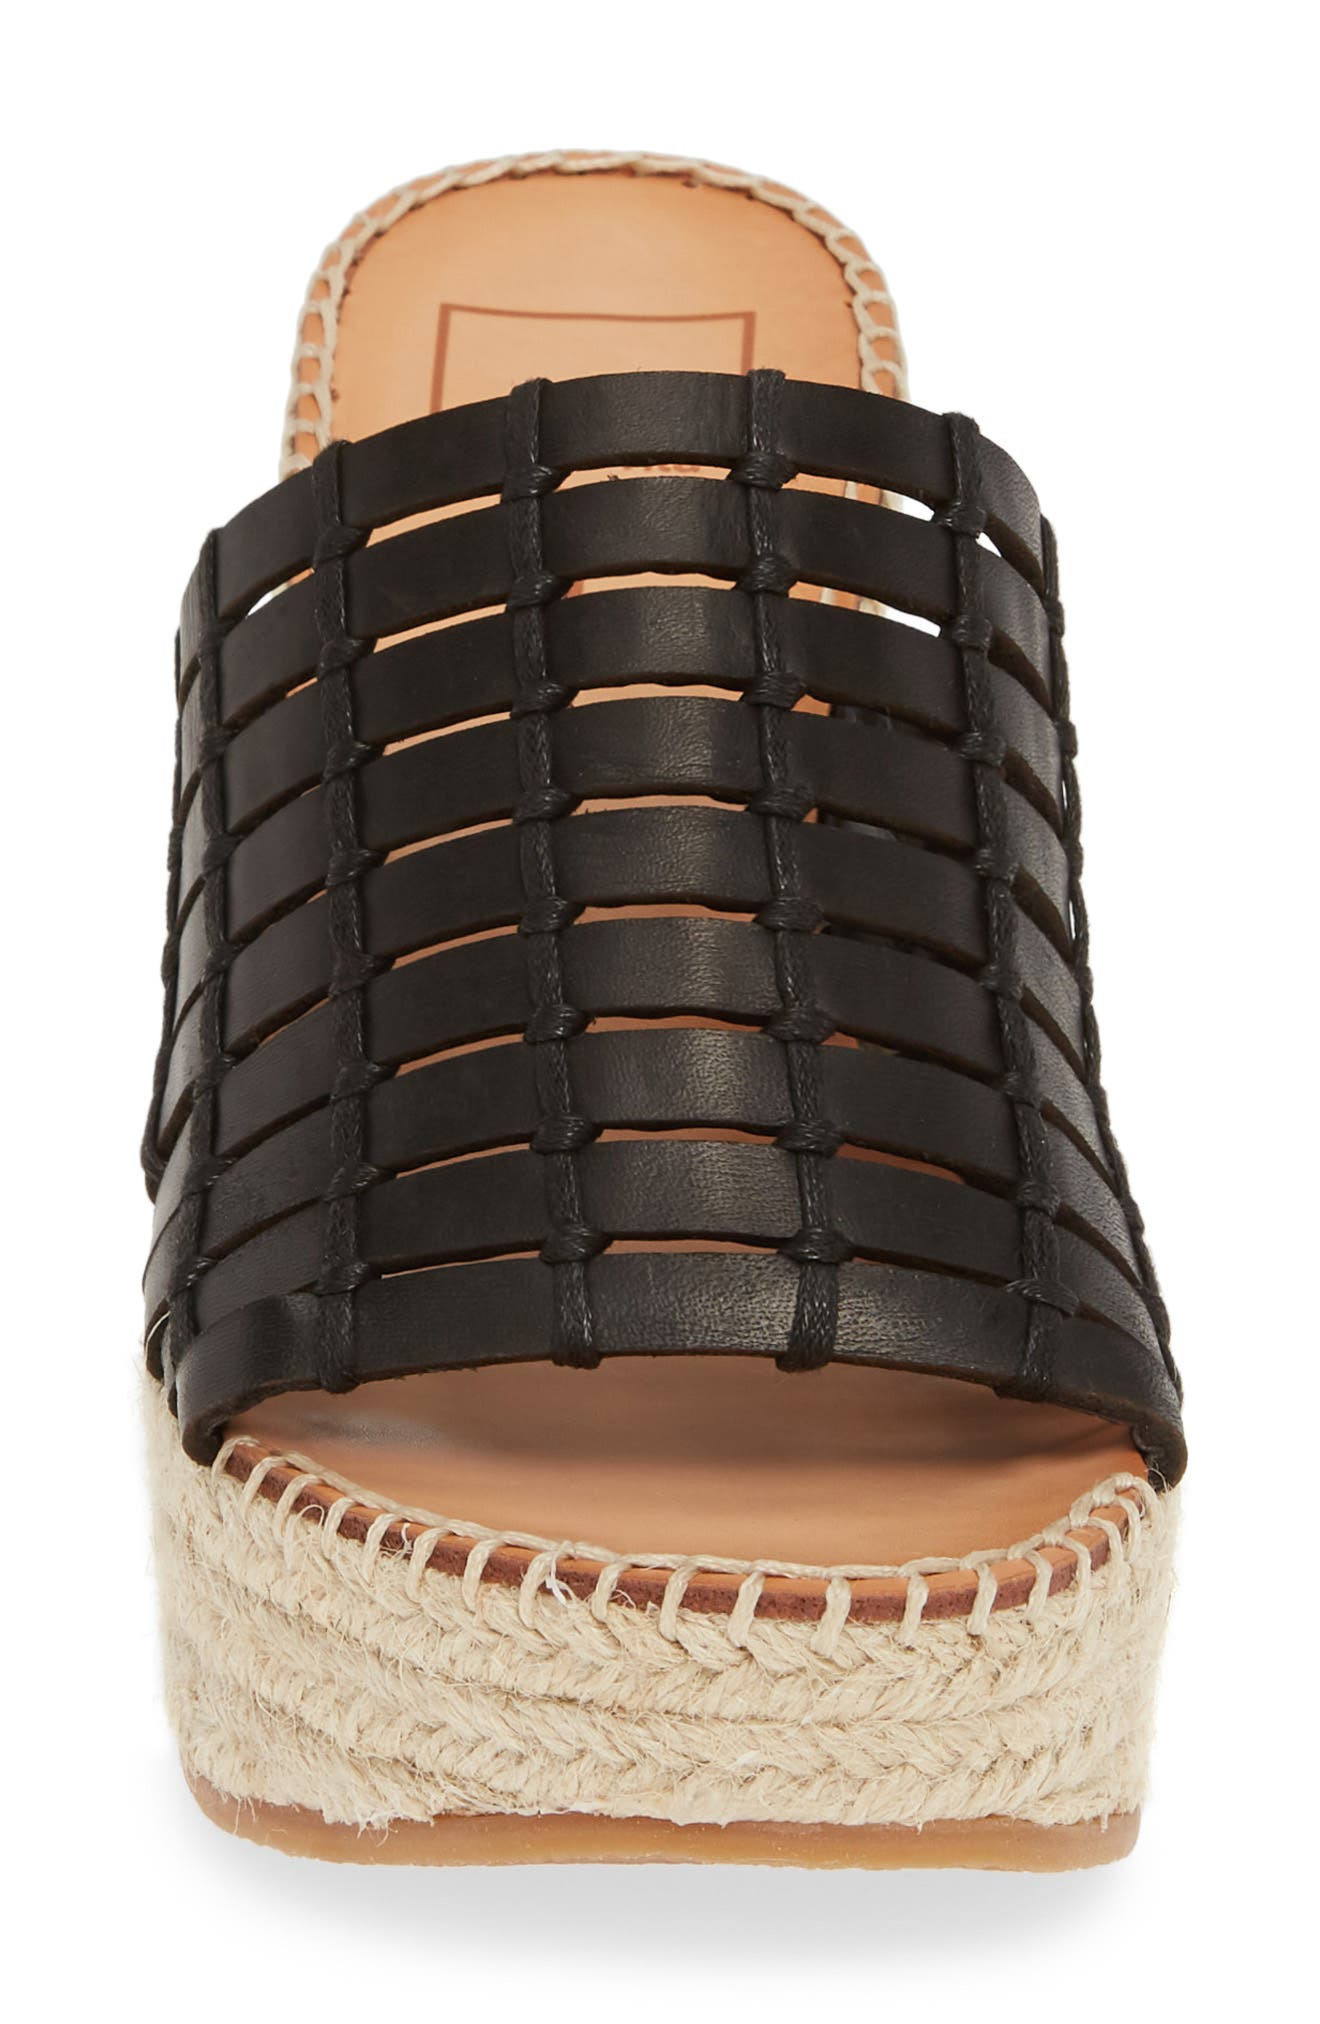 DOLCE VITA, Prue Espadrille Wedge Slide Sandal, Alternate thumbnail 4, color, BLACK LEATHER